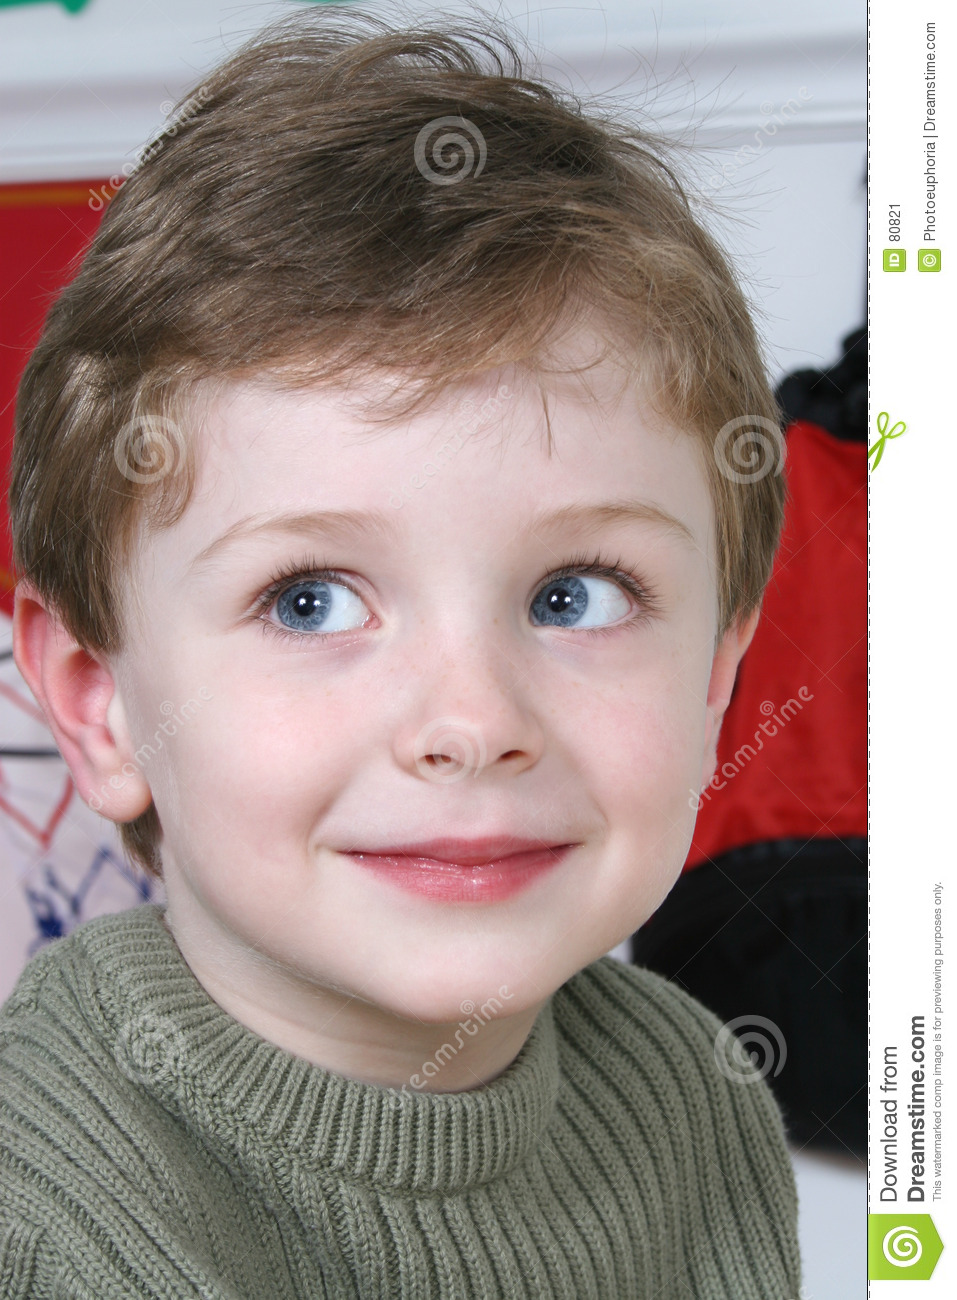 Adorable Four Year Boy With Big Blue Eyes Stock Image: Adorable Four Year Old Boy With Big Blue Eyes Stock Image